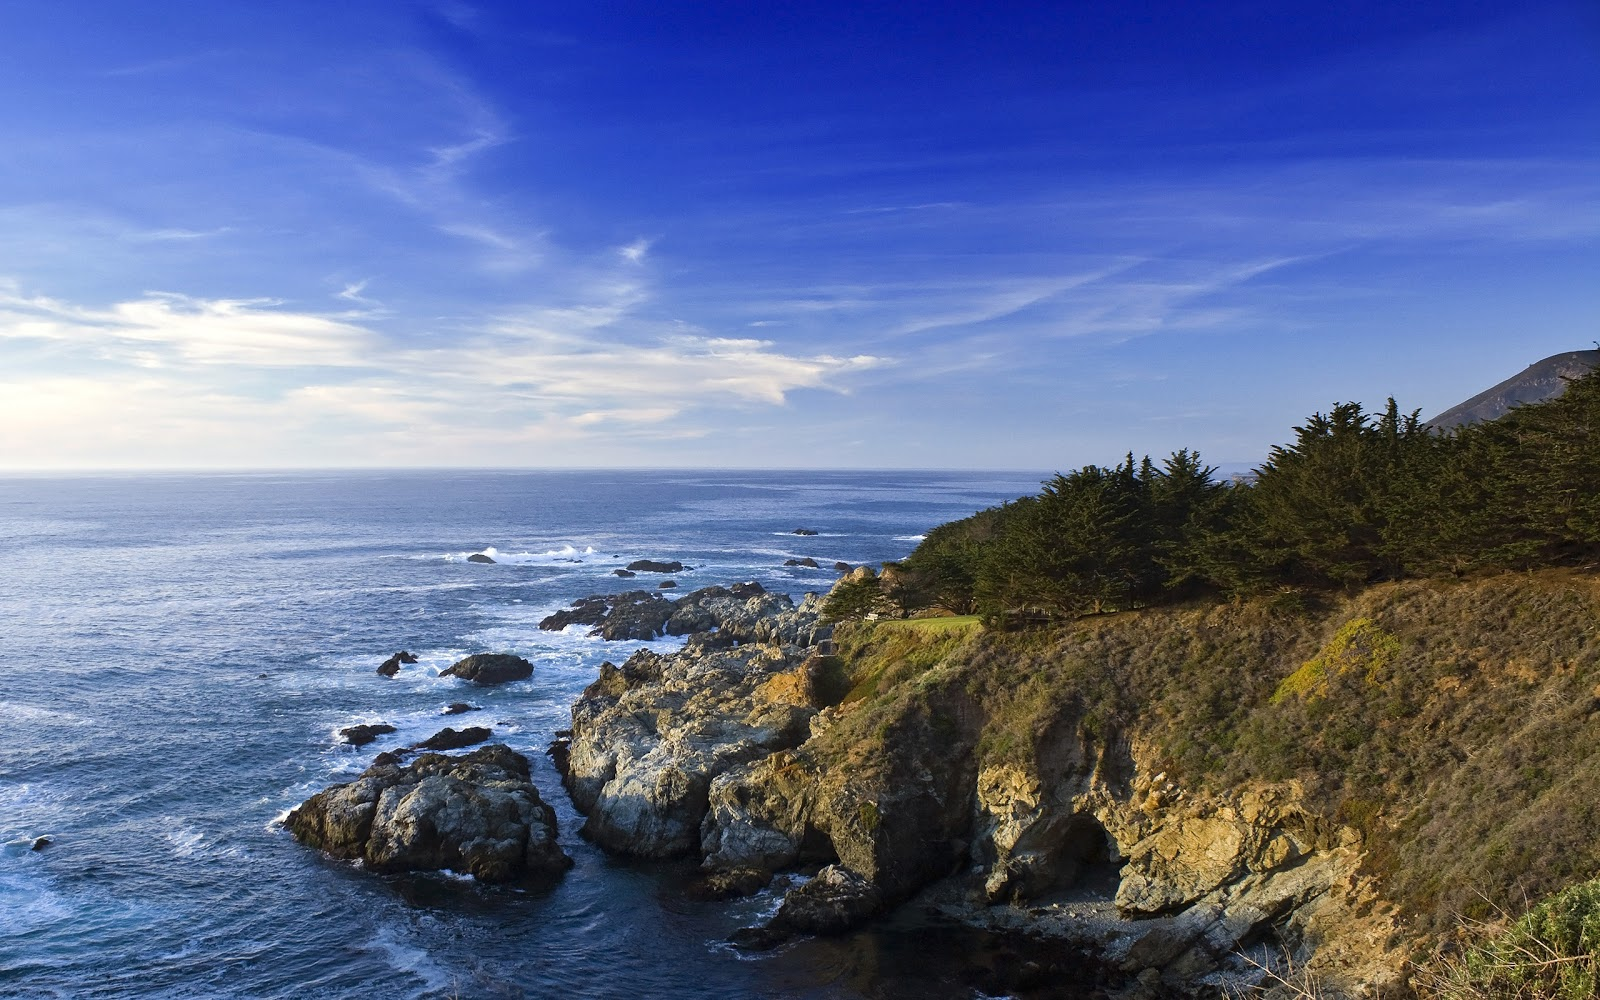 http://3.bp.blogspot.com/-KJDNSZ4fAbA/TxCzbDdAKwI/AAAAAAAAPnc/d7sVo0DEYQk/s1600/california_coast_hd_widescreen_wallpapers_2560x1600.jpg